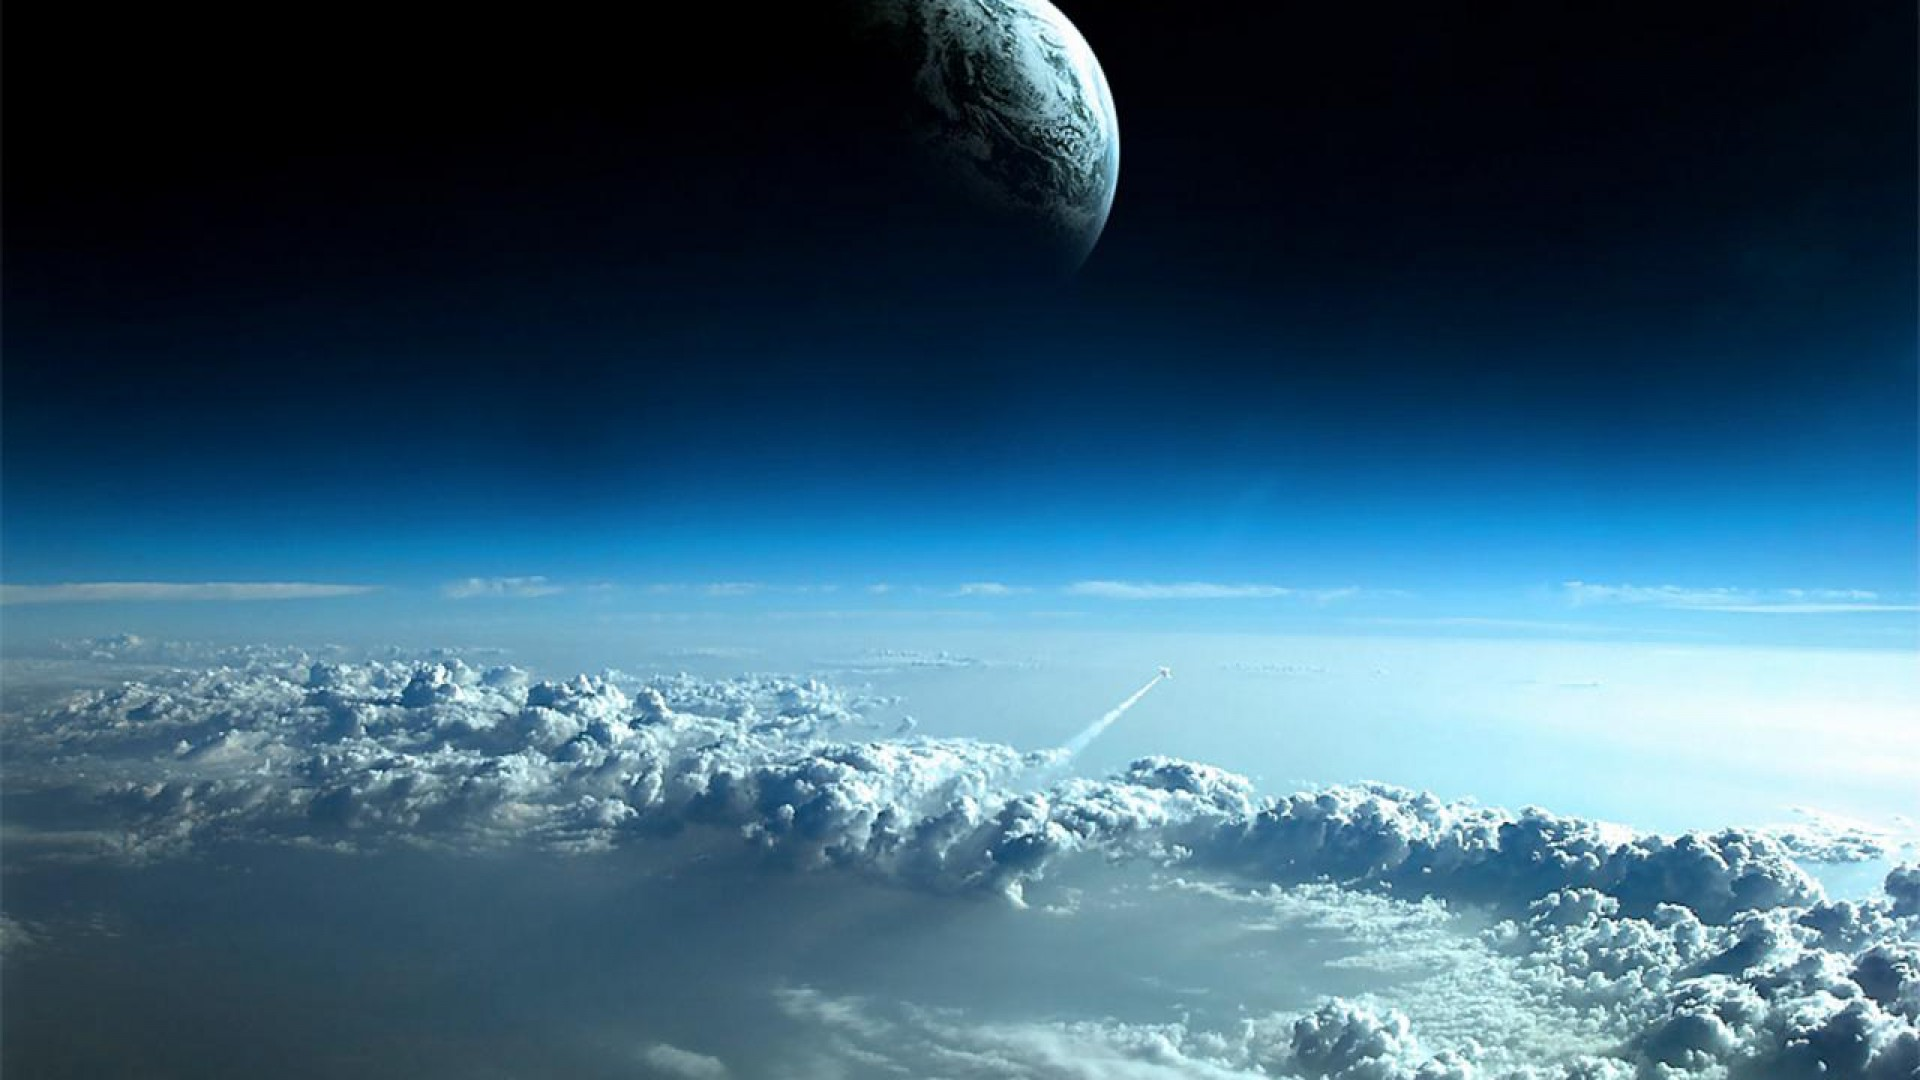 amazing space hd wallpaper